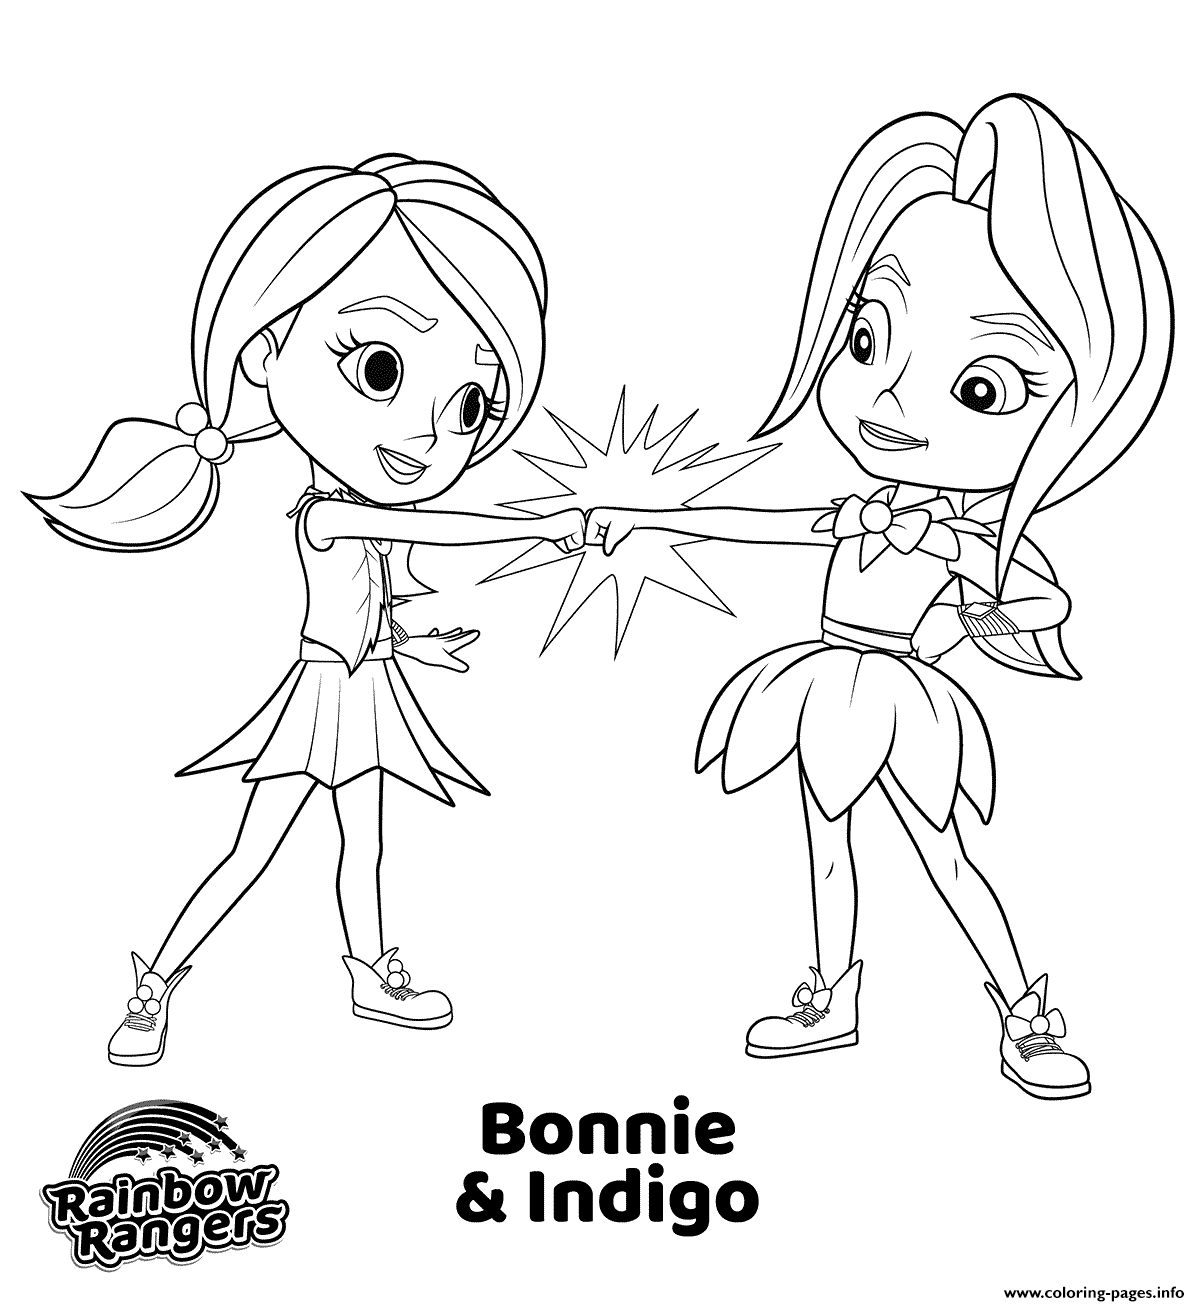 rainbow rangers coloring pages 15 tutorial rainbow rangers coloring page with video and coloring rainbow pages rangers